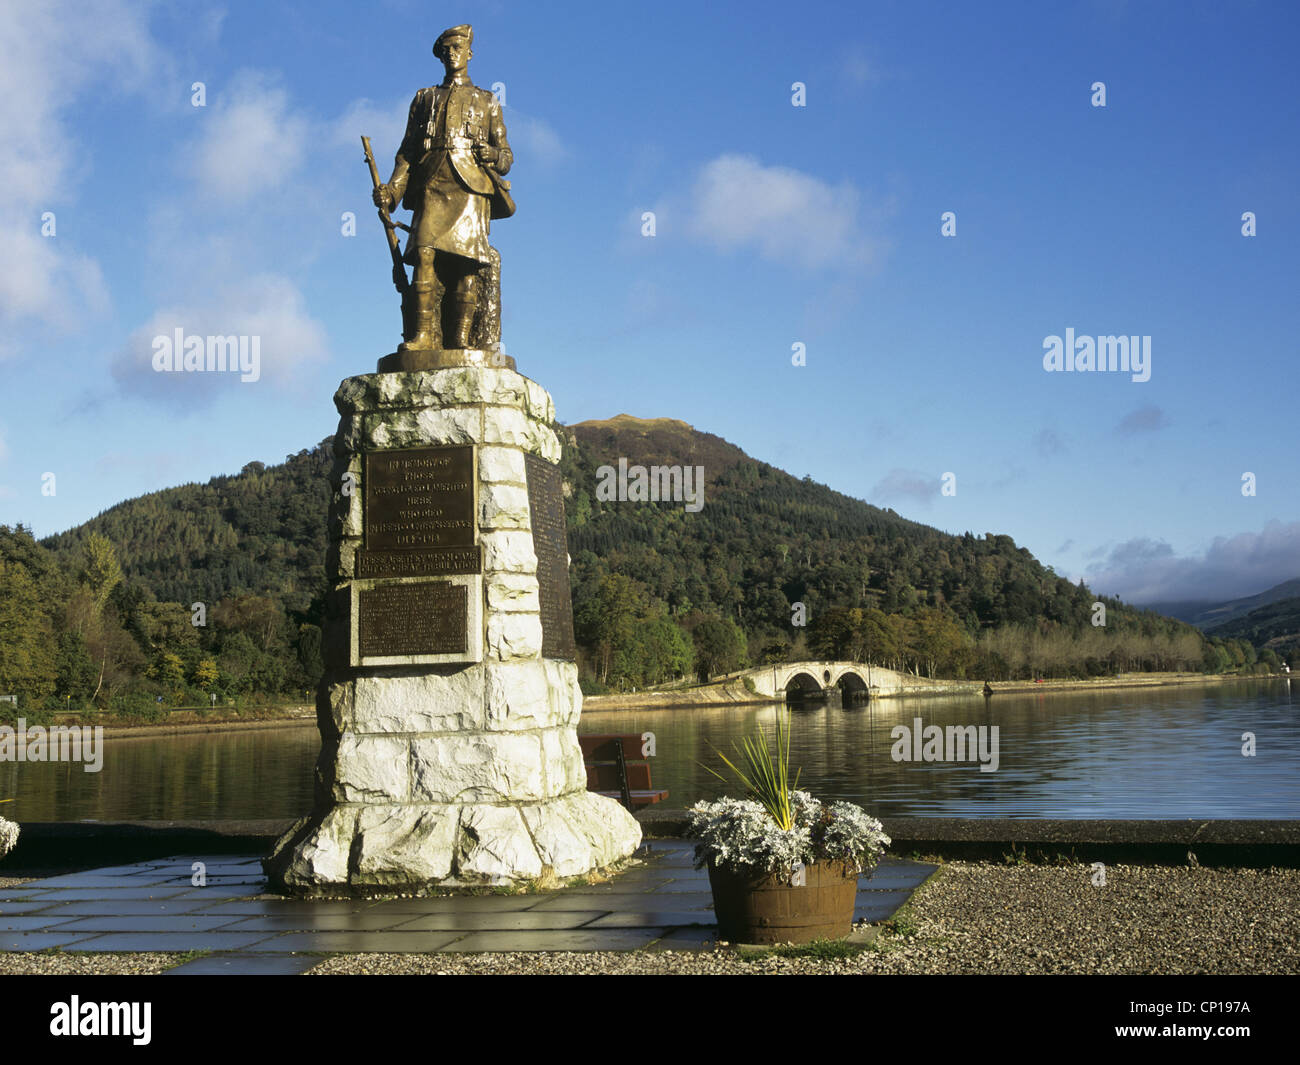 Inveraray Scotland UK Statue of Scottish soldier as war memorial on side of Loch Fyne on lovely May day weather - Stock Image